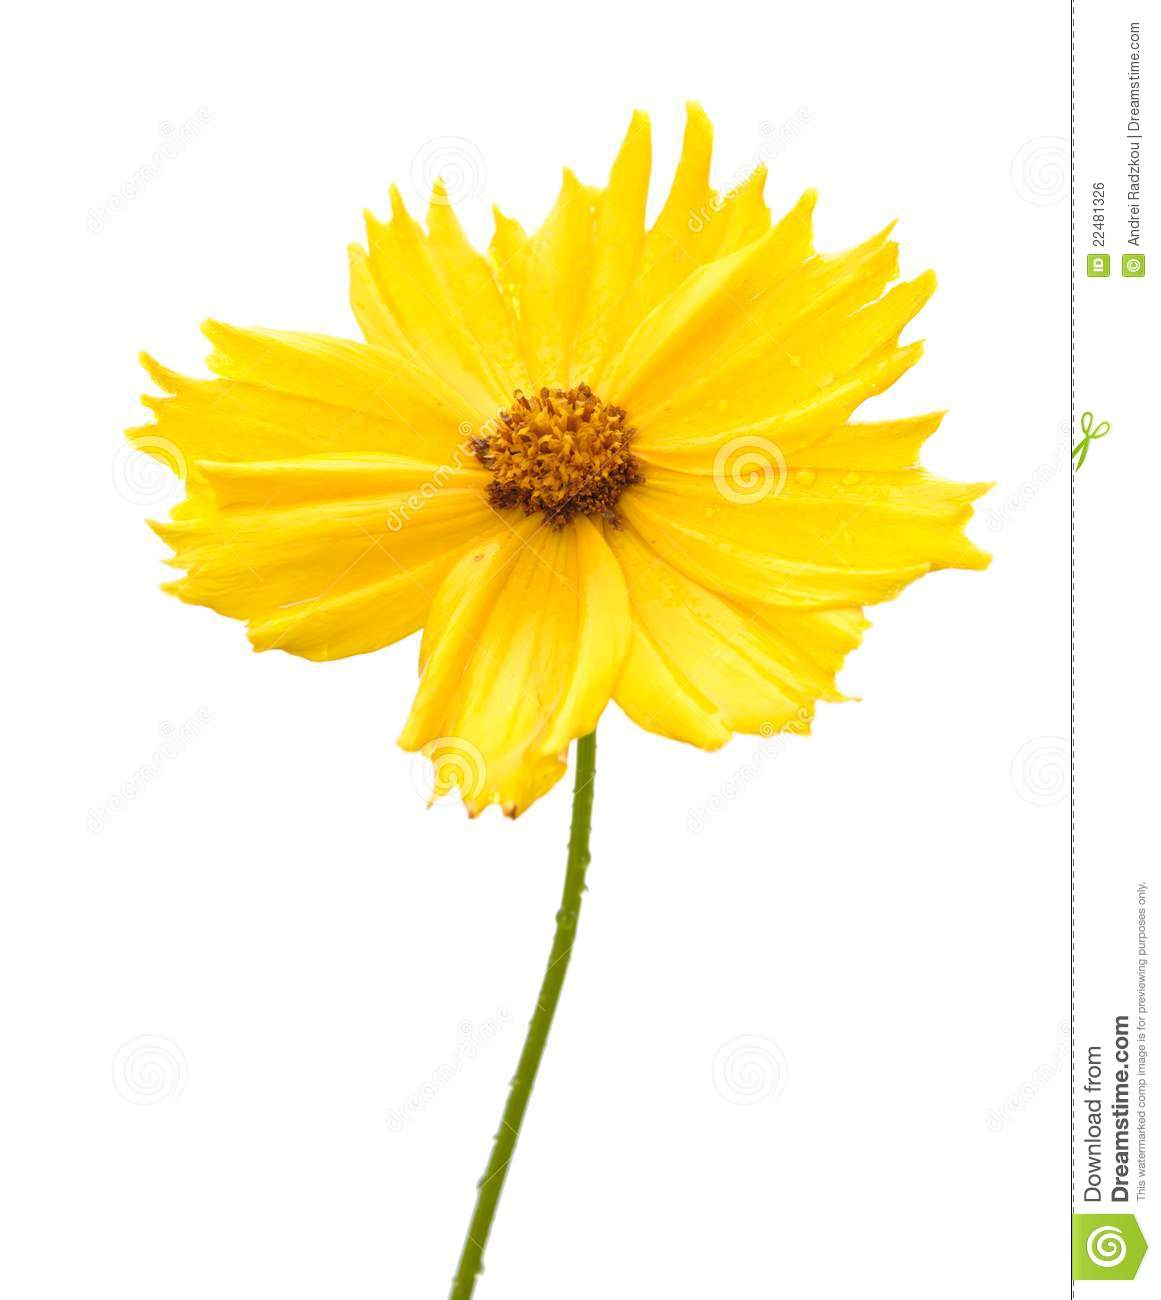 Coreopsis clipart #17, Download drawings